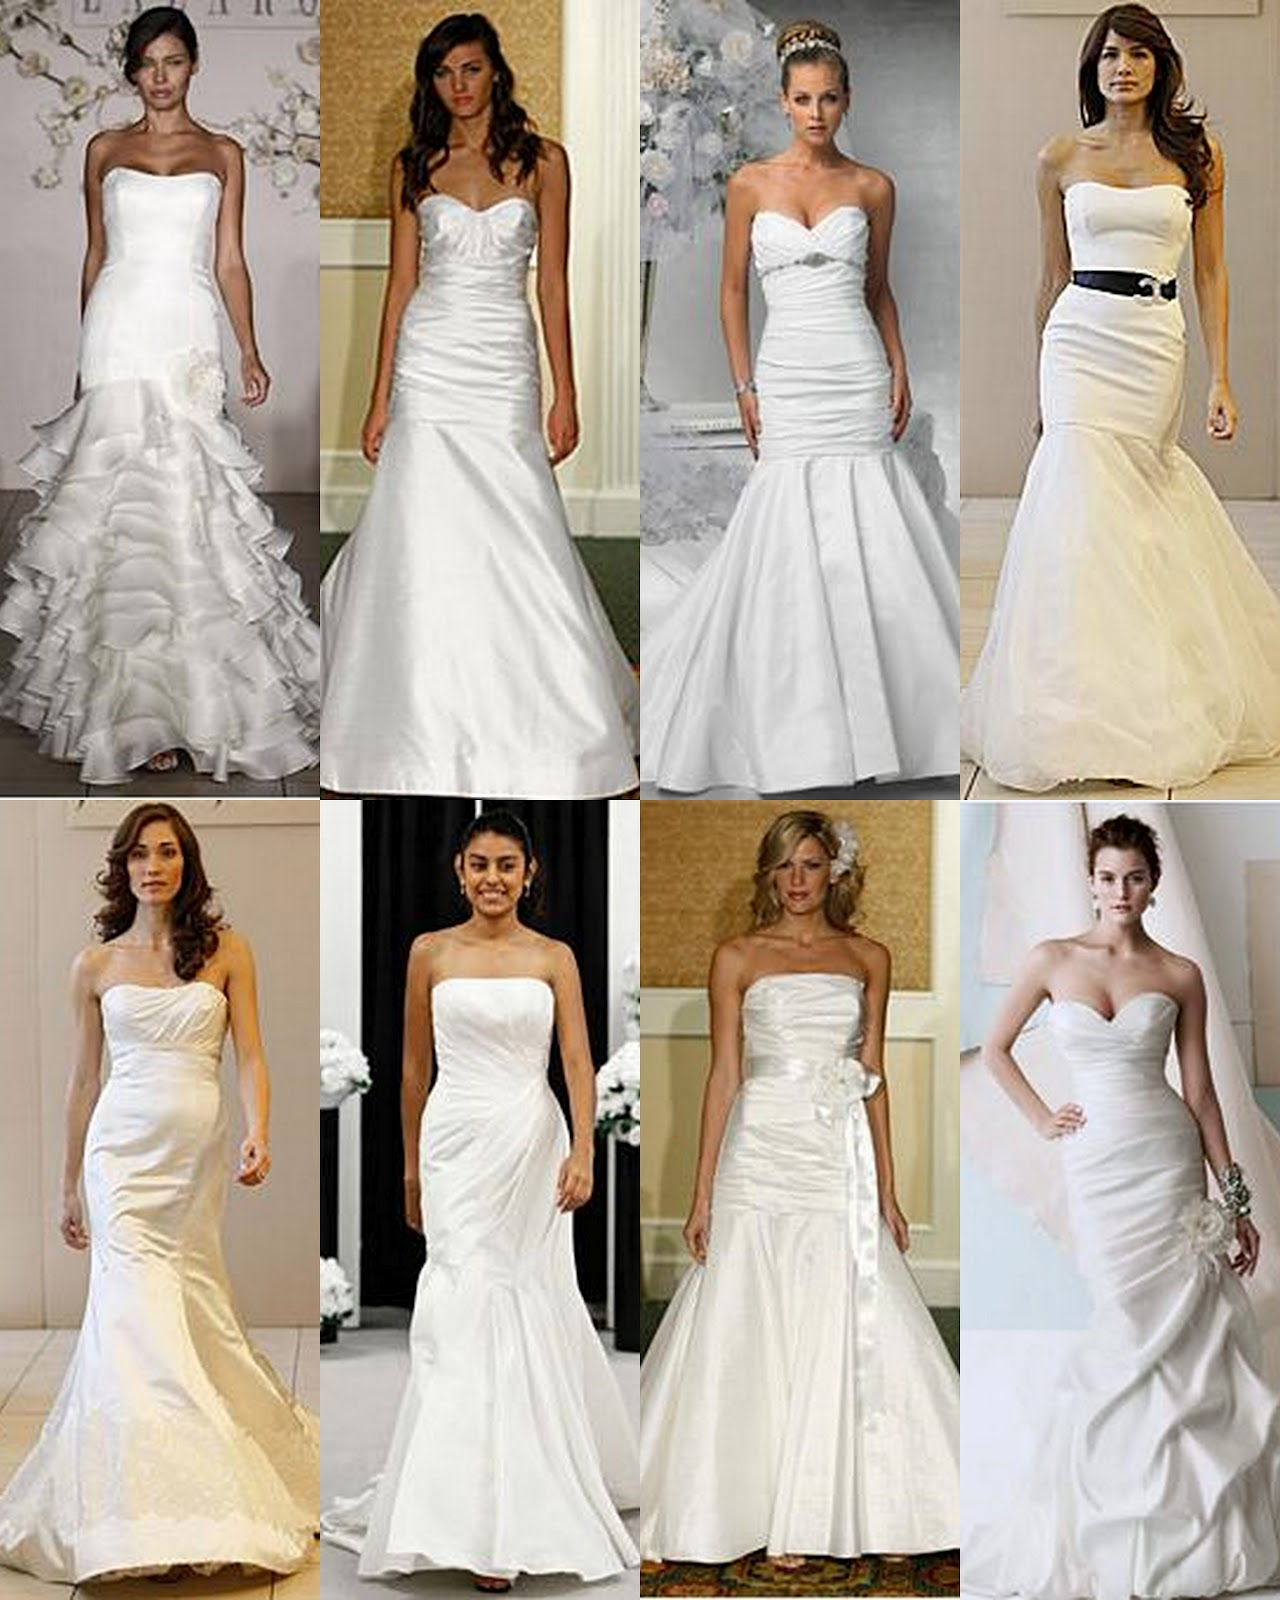 Types Of Wedding Dresses With Pictures